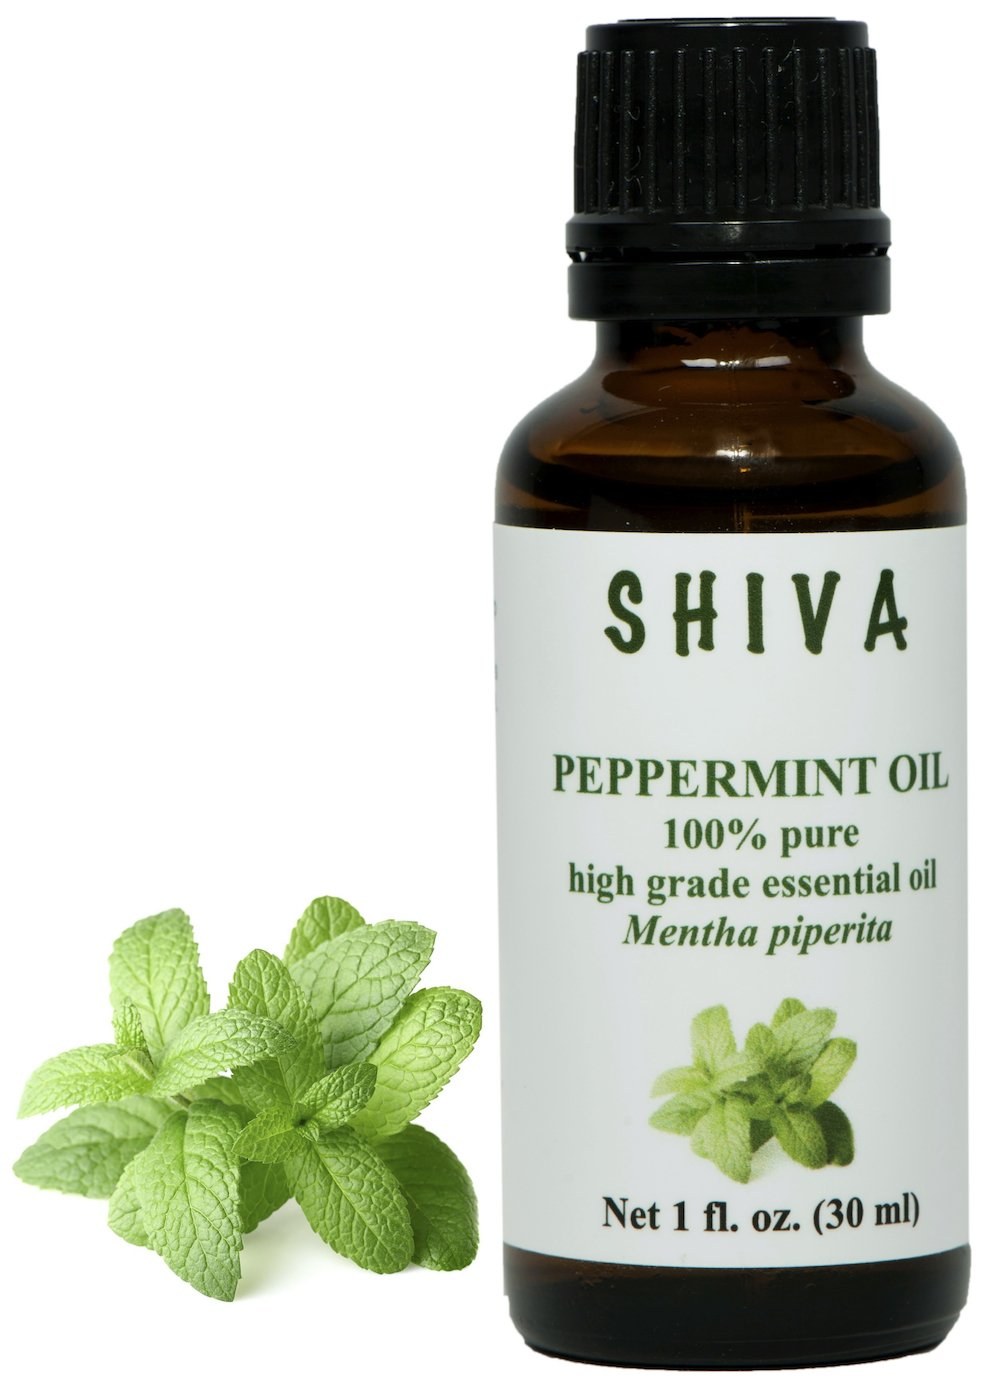 SHIVA 100% Pure Peppermint Essential Oil 30 ml / 1 FL. OZ. (Mentha piperita). Low introductory price for a limited time.